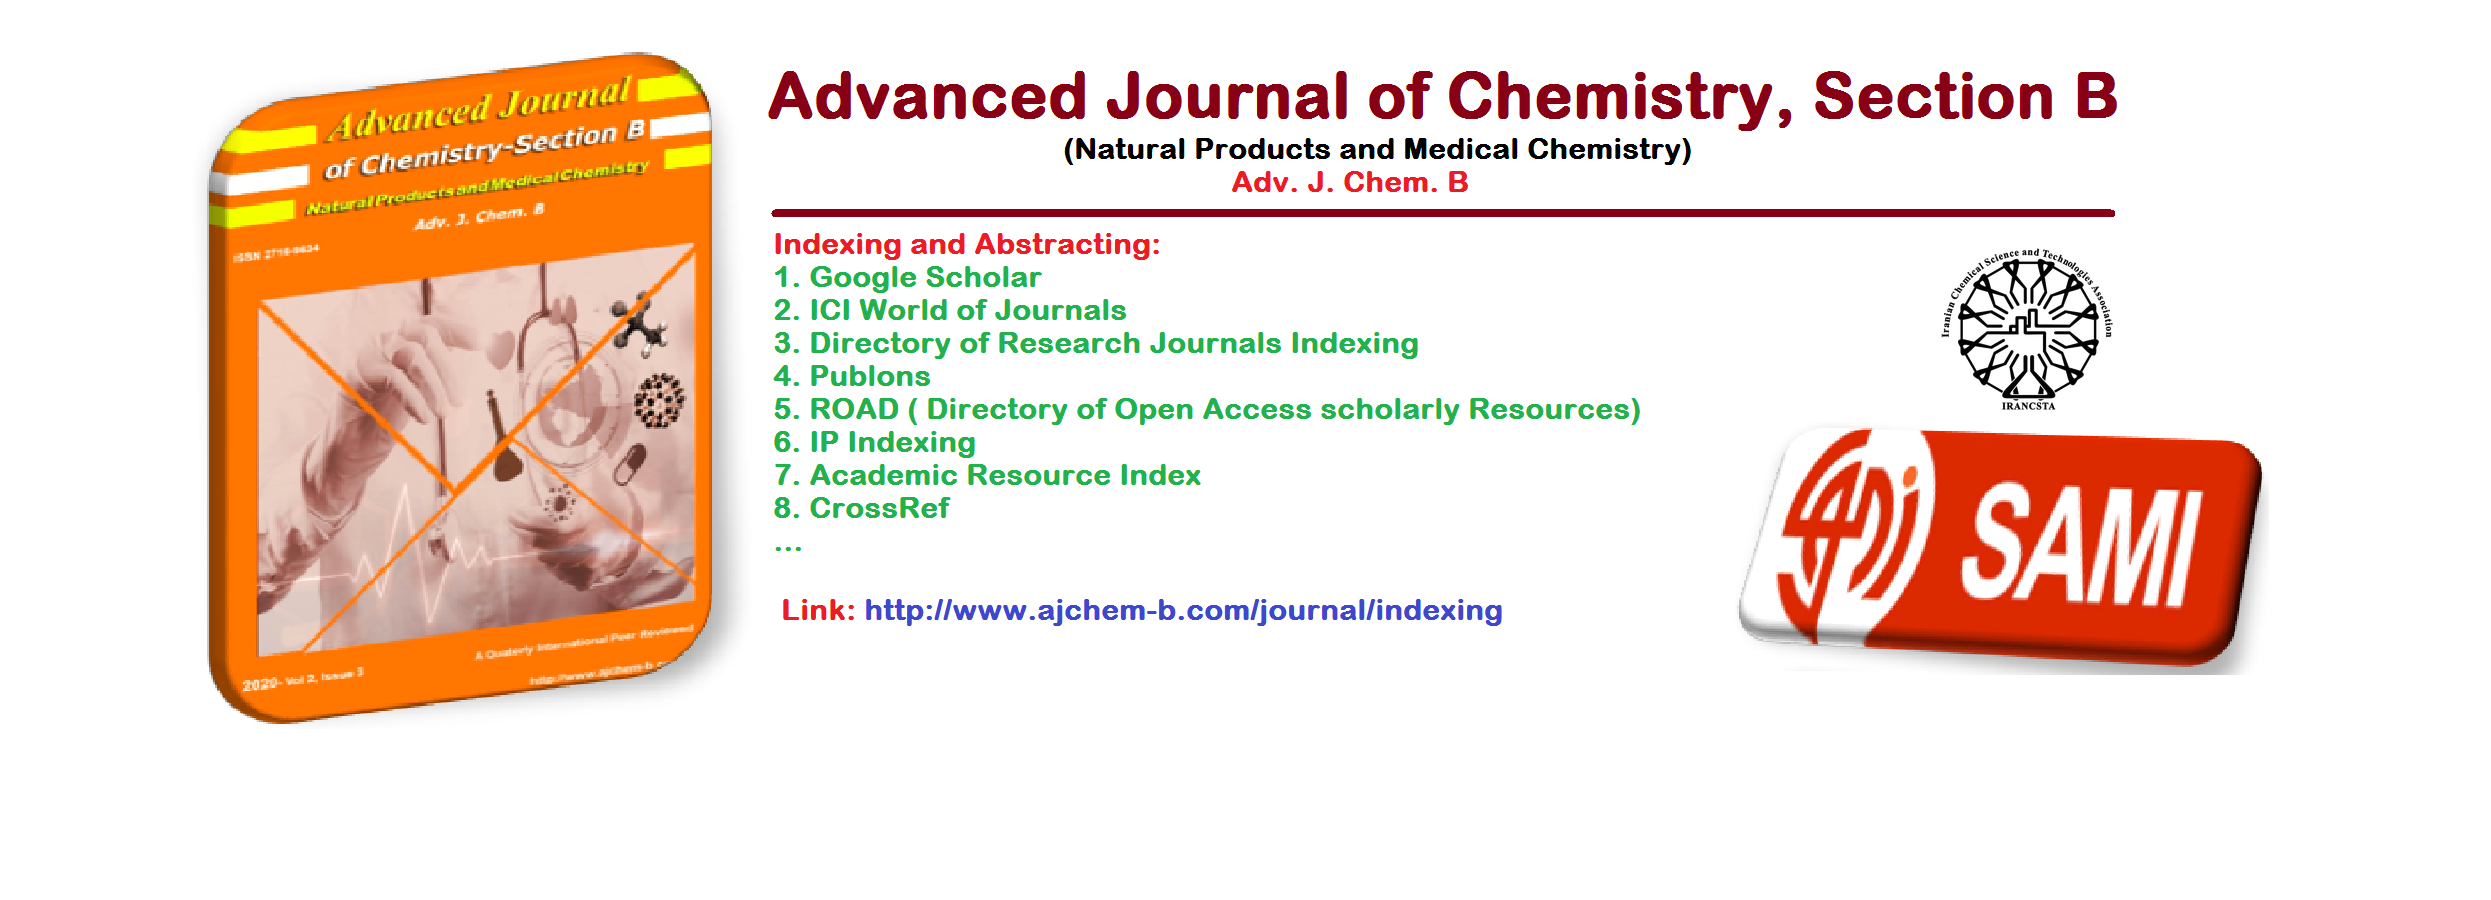 Advanced Journal of Chemistry, Section B